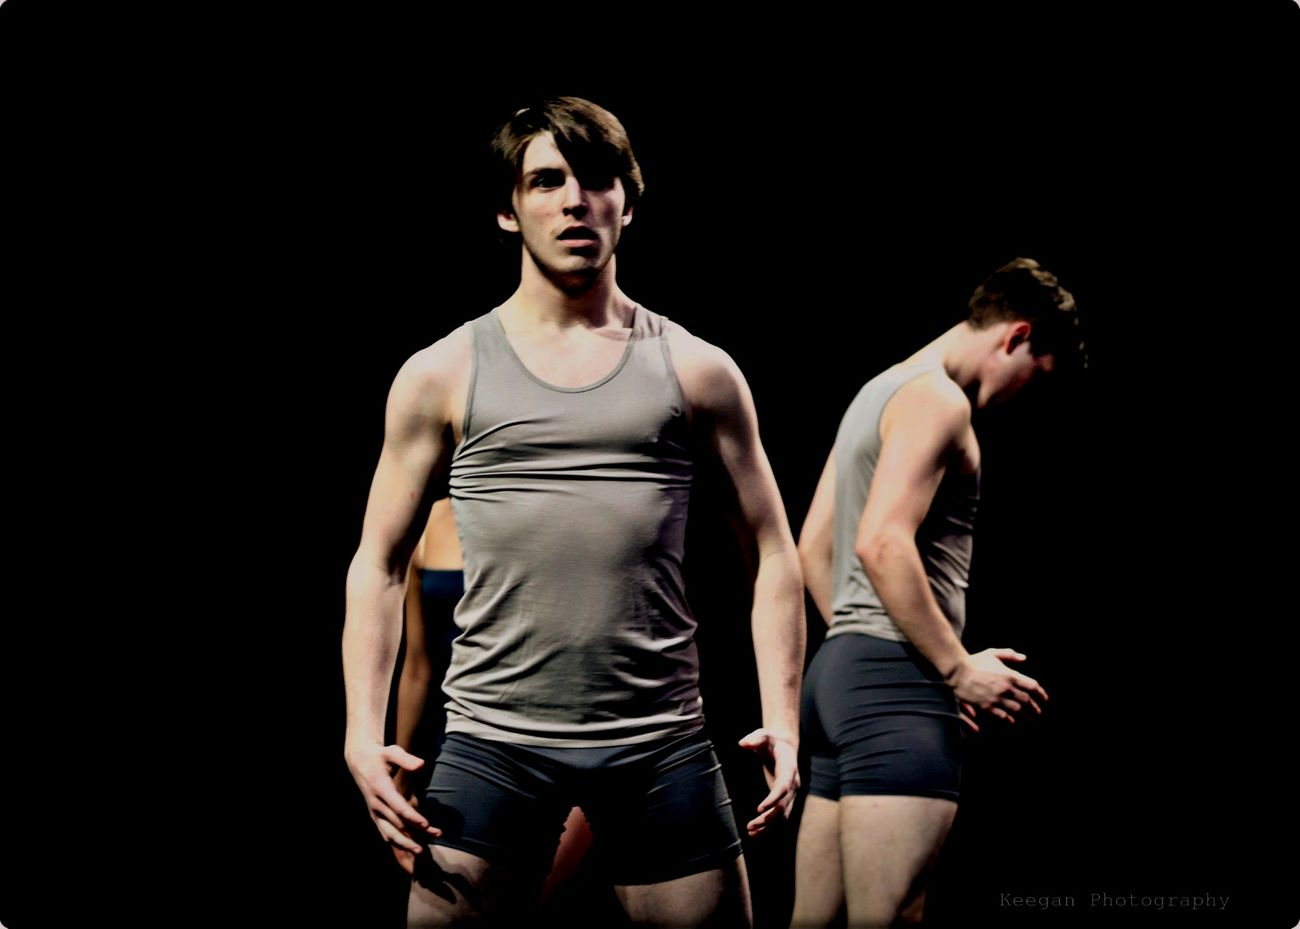 Boysdancetoo Dancing Male Dancer French Academie Of Ballet Maledancer FAB Performing Arts Performance Focus